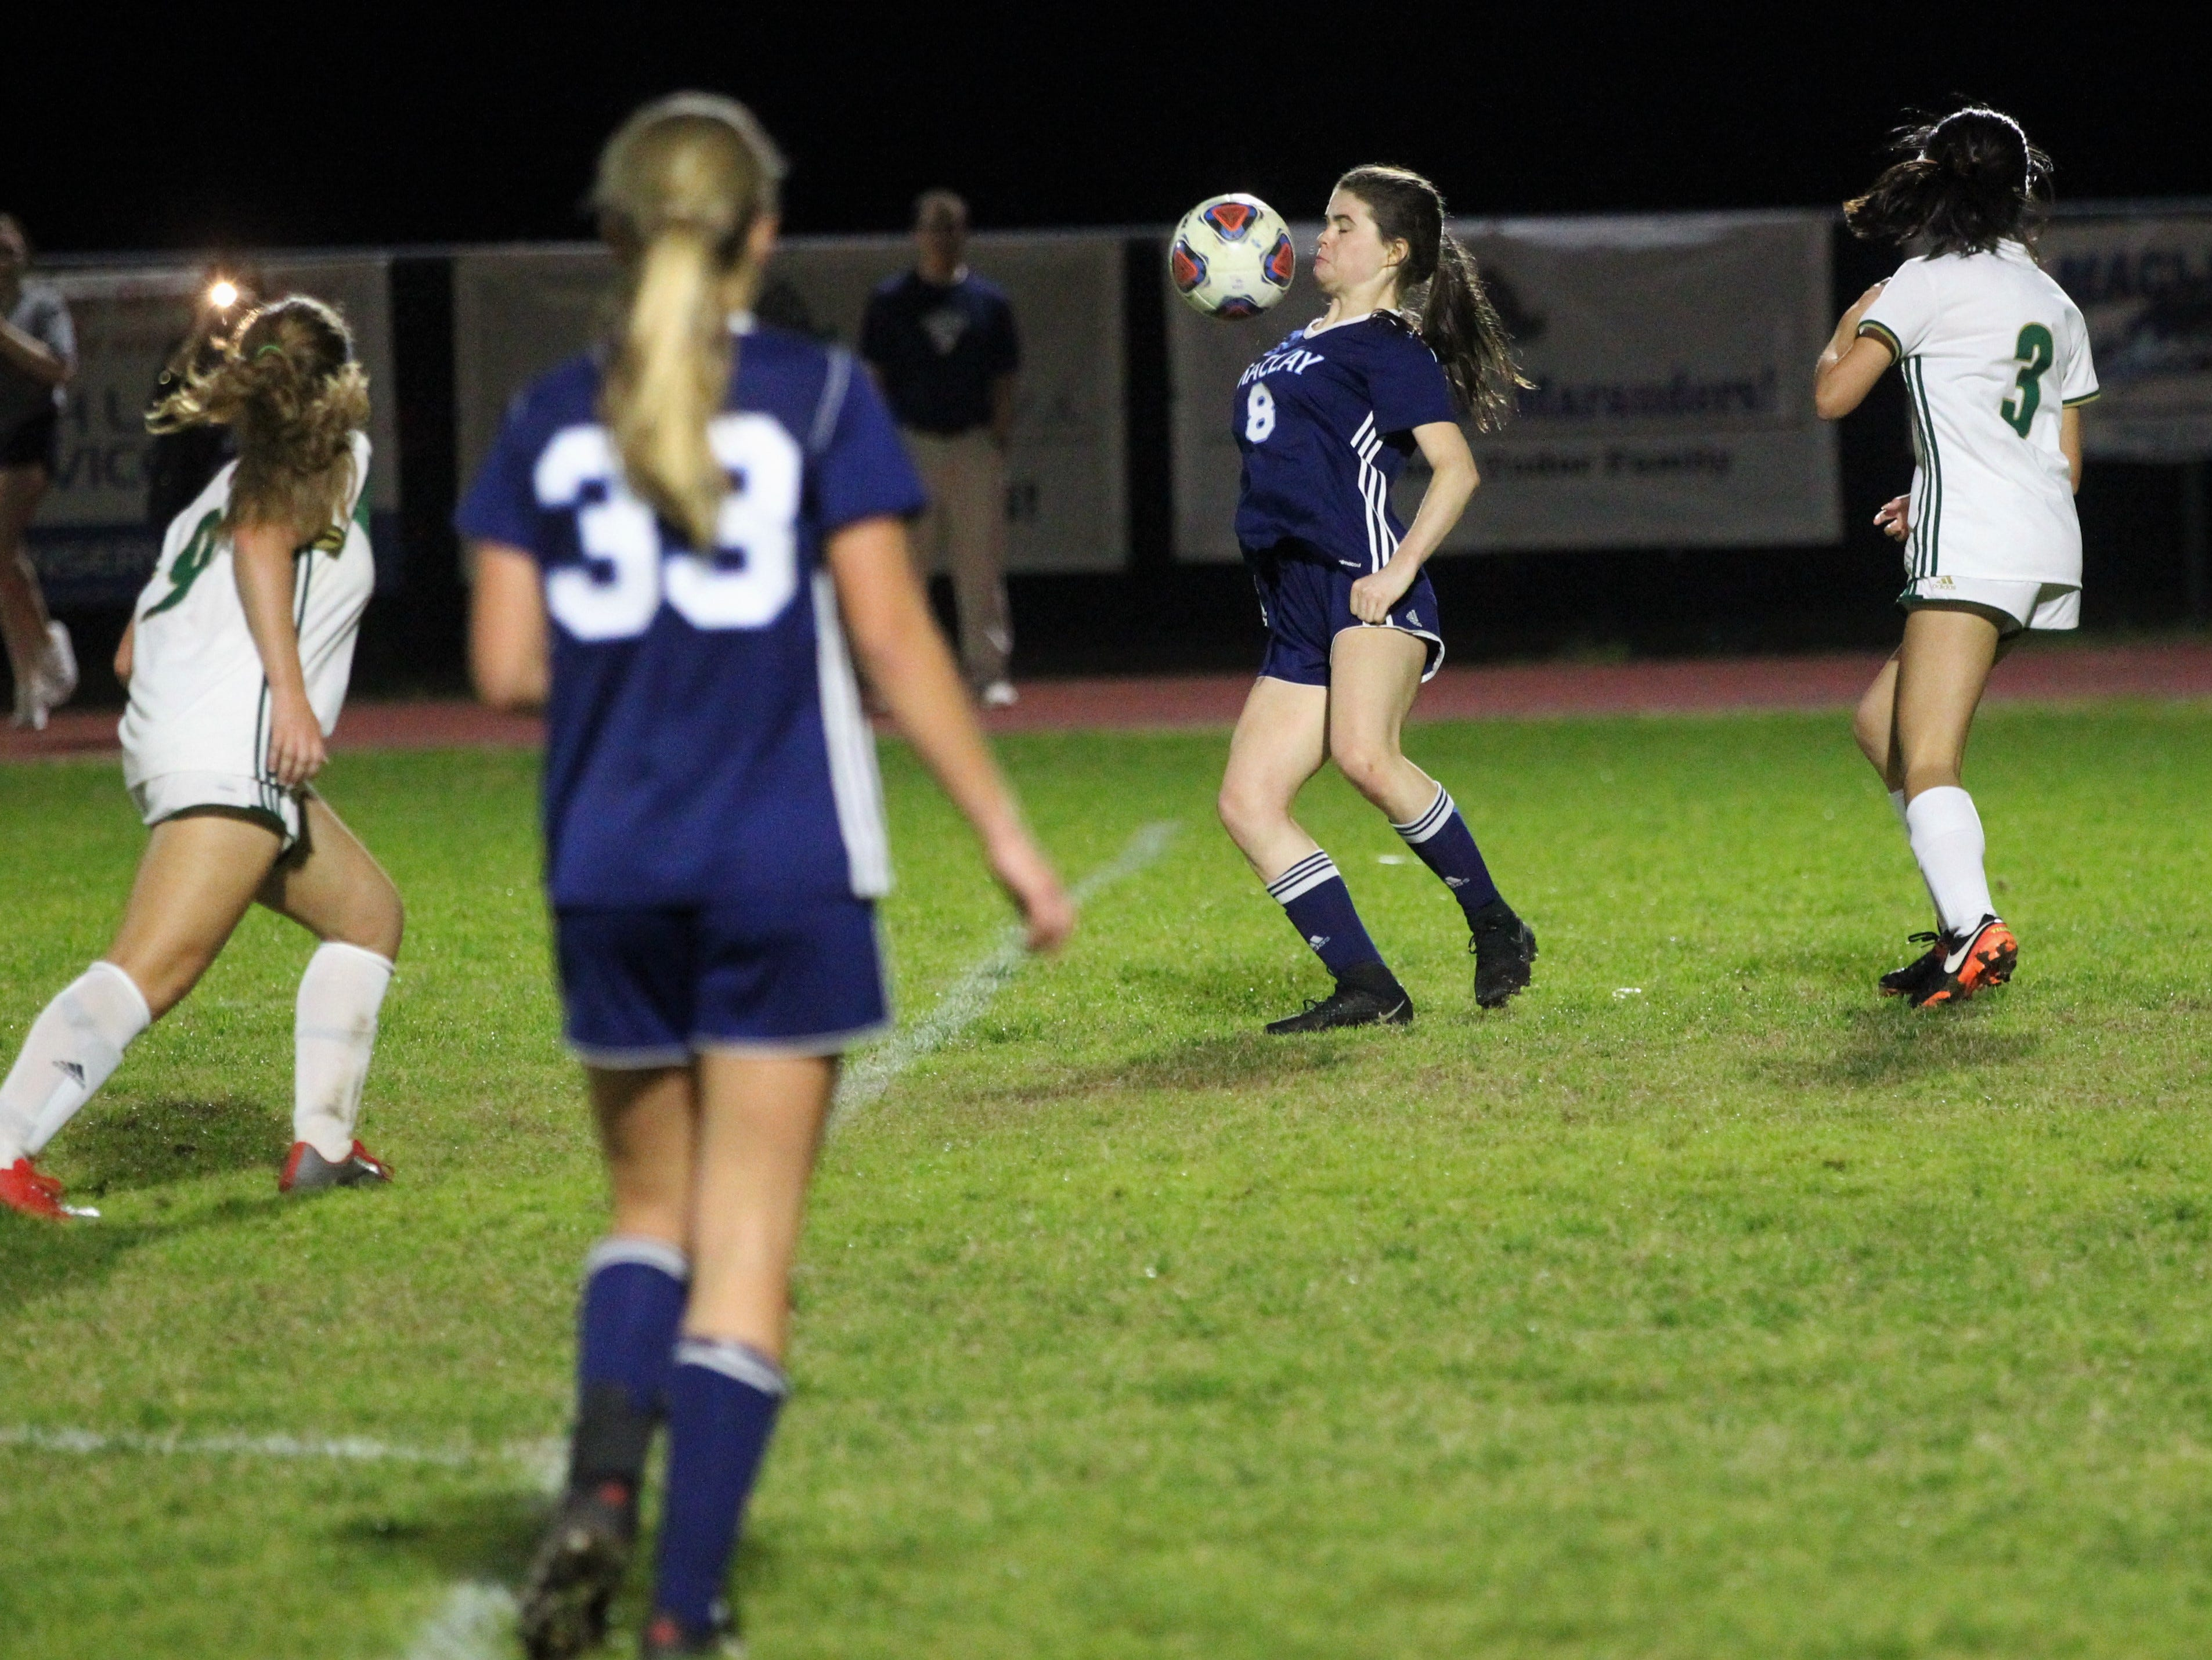 Maclay's Katie Lynch tries to bring in a pass off her chest as Maclay's girls soccer team beat St. Joseph Academy 4-0 in a Region 1-1A quarterfinal on Jan. 5, 2019.